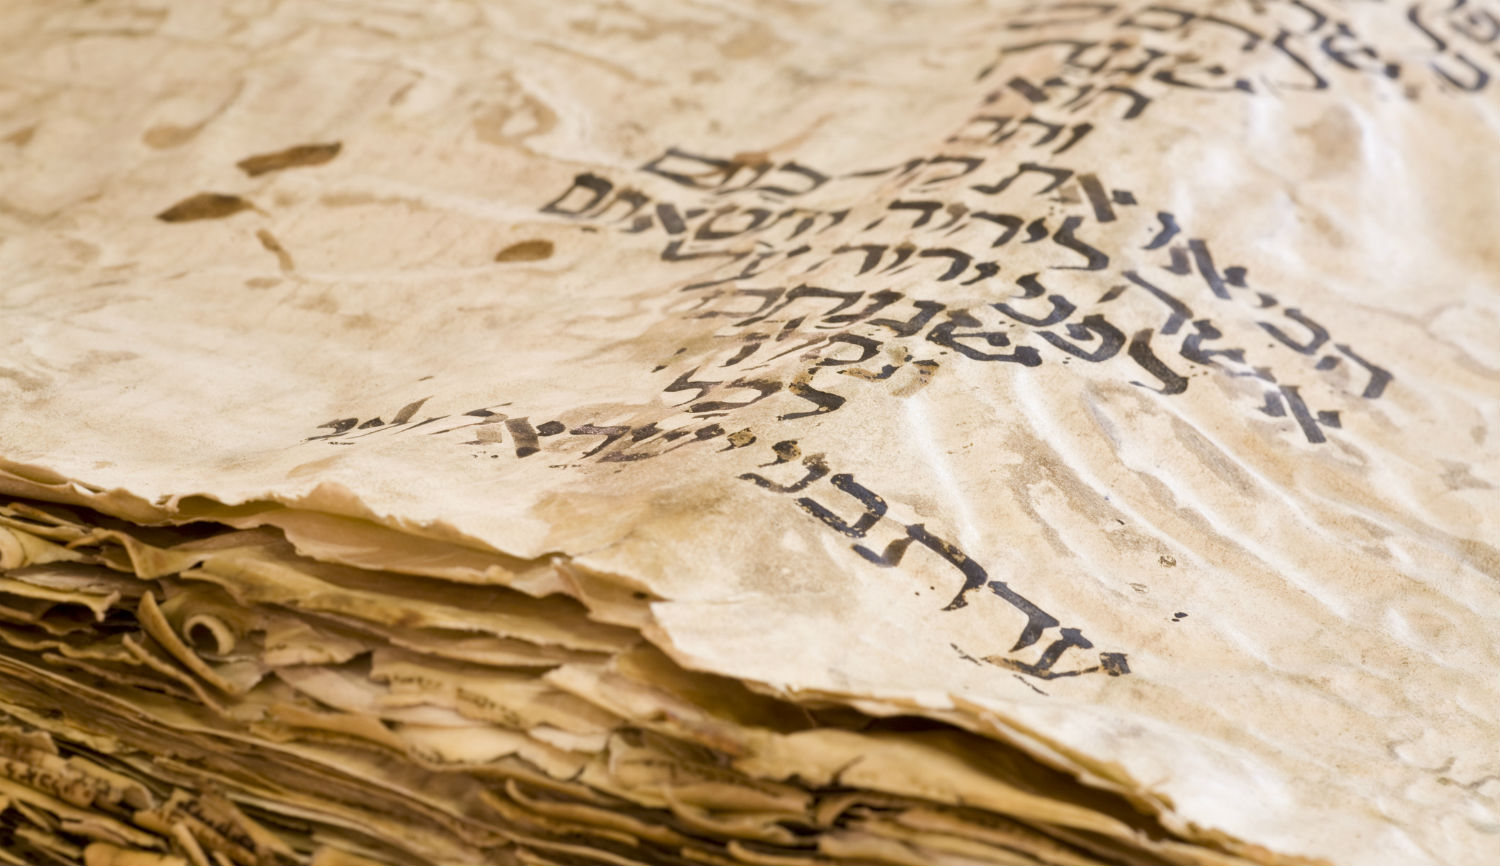 Pages from a 10th-century Hebrew Bible. Benedek/istockphoto.